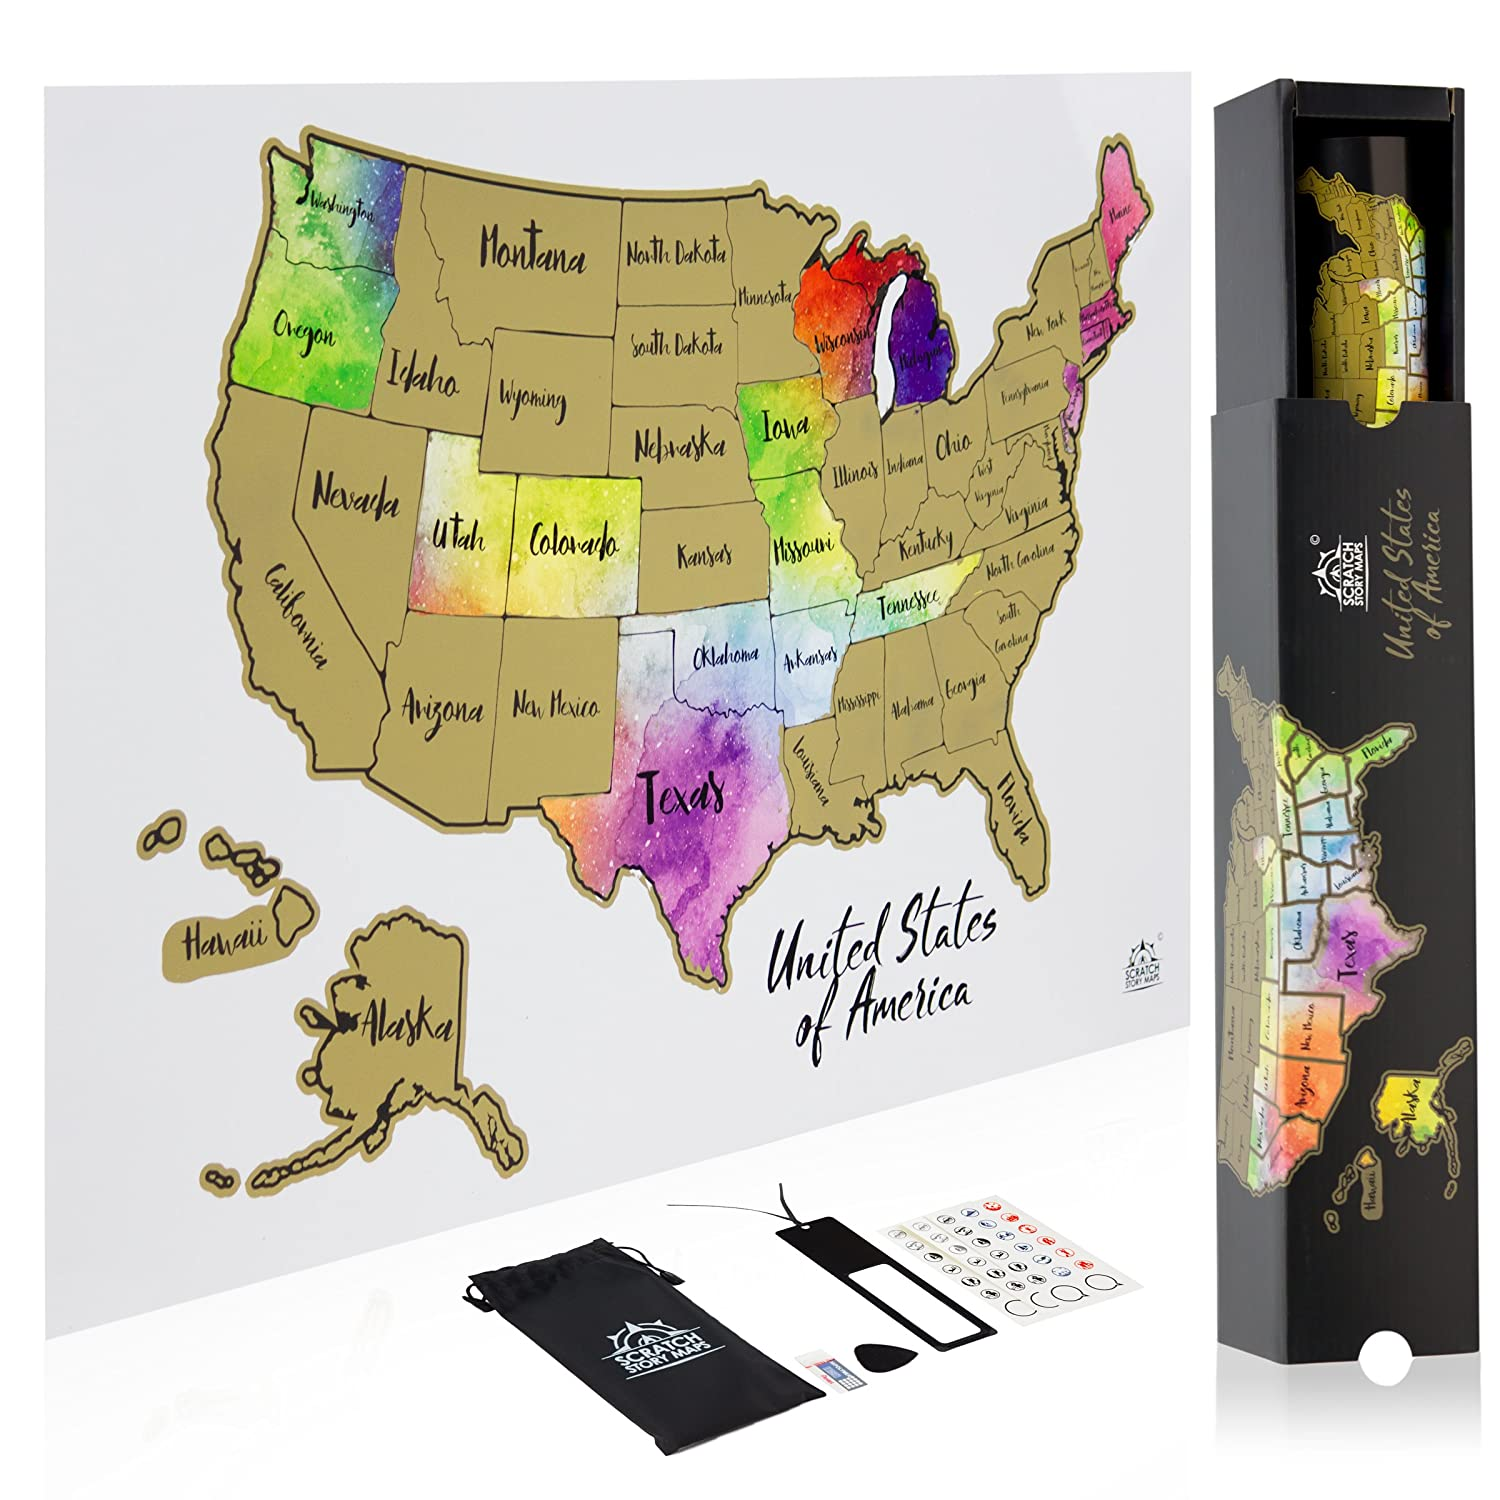 Scratch Off Map Of The United States In STUNNING WATERCOLOR Poster on map of idaho balanced rock, map showing counties of idaho, map of idaho showing cities, map of idaho and montana, map of great basin usa, map of madison usa, map of sandpoint idaho and surrounding area, map of rocky mountains in idaho, map of osburn idaho, map of southern idaho, map of tensed idaho, map of jamaica usa, map of idaho capitol building, driggs idaho map usa, map of state of washington usa, map of northern idaho, map of idaho state, map of northwest territory usa, map of san antonio usa, map of idaho college,